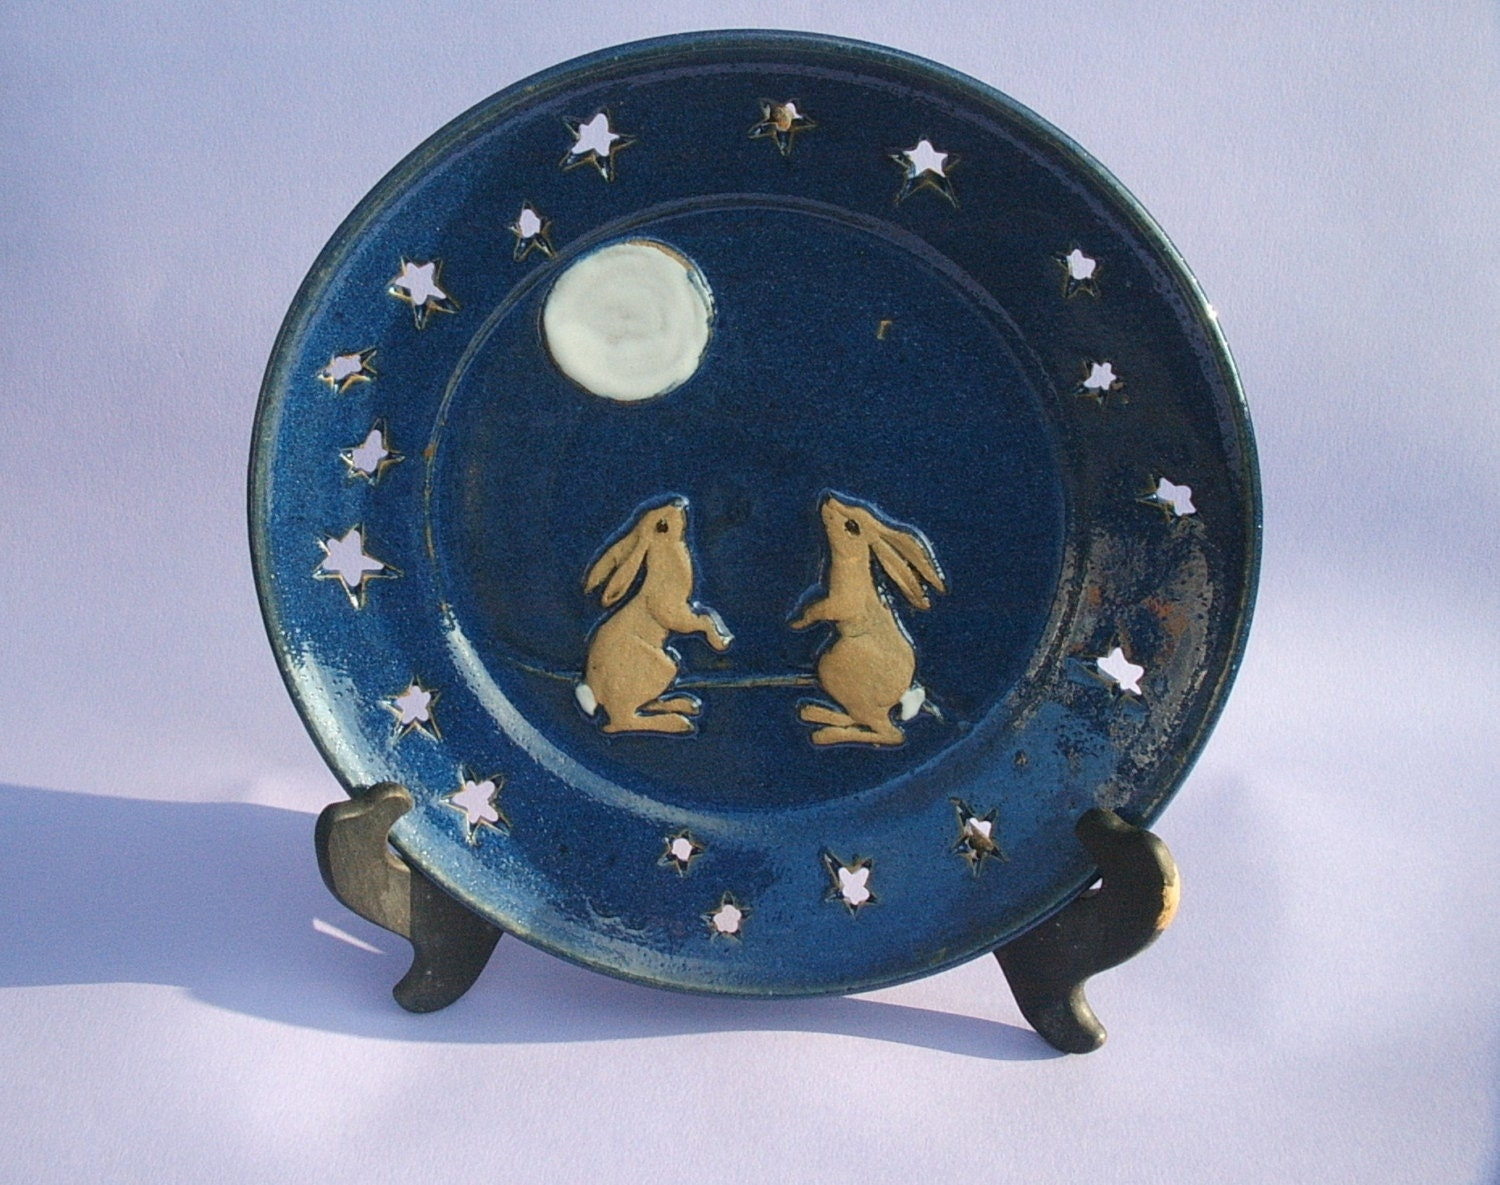 Hand Thrown Stoneware Pottery Plate With Moongazing Hares